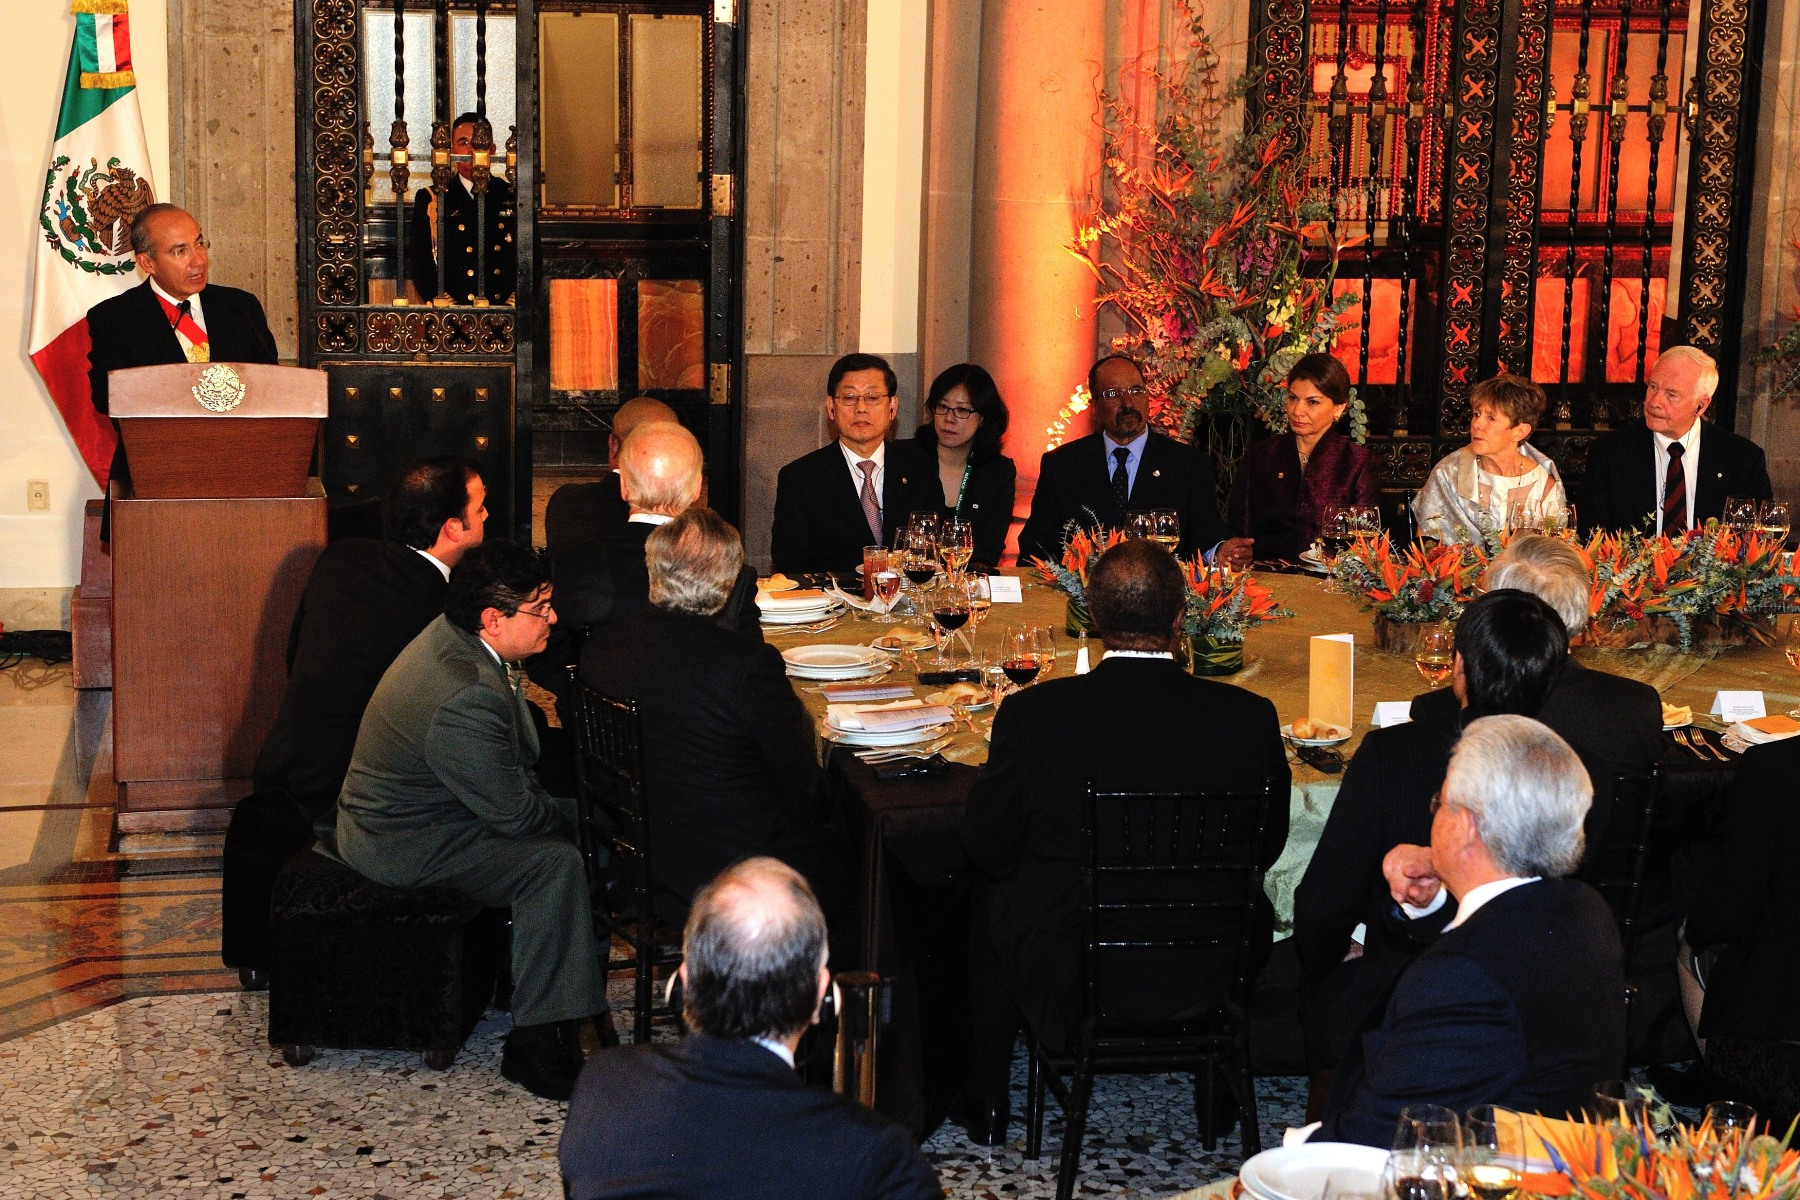 Their Excellencies represented Canada at a dinner given by the outgoing president of Mexico, Felipe Calderón Hinojosa.